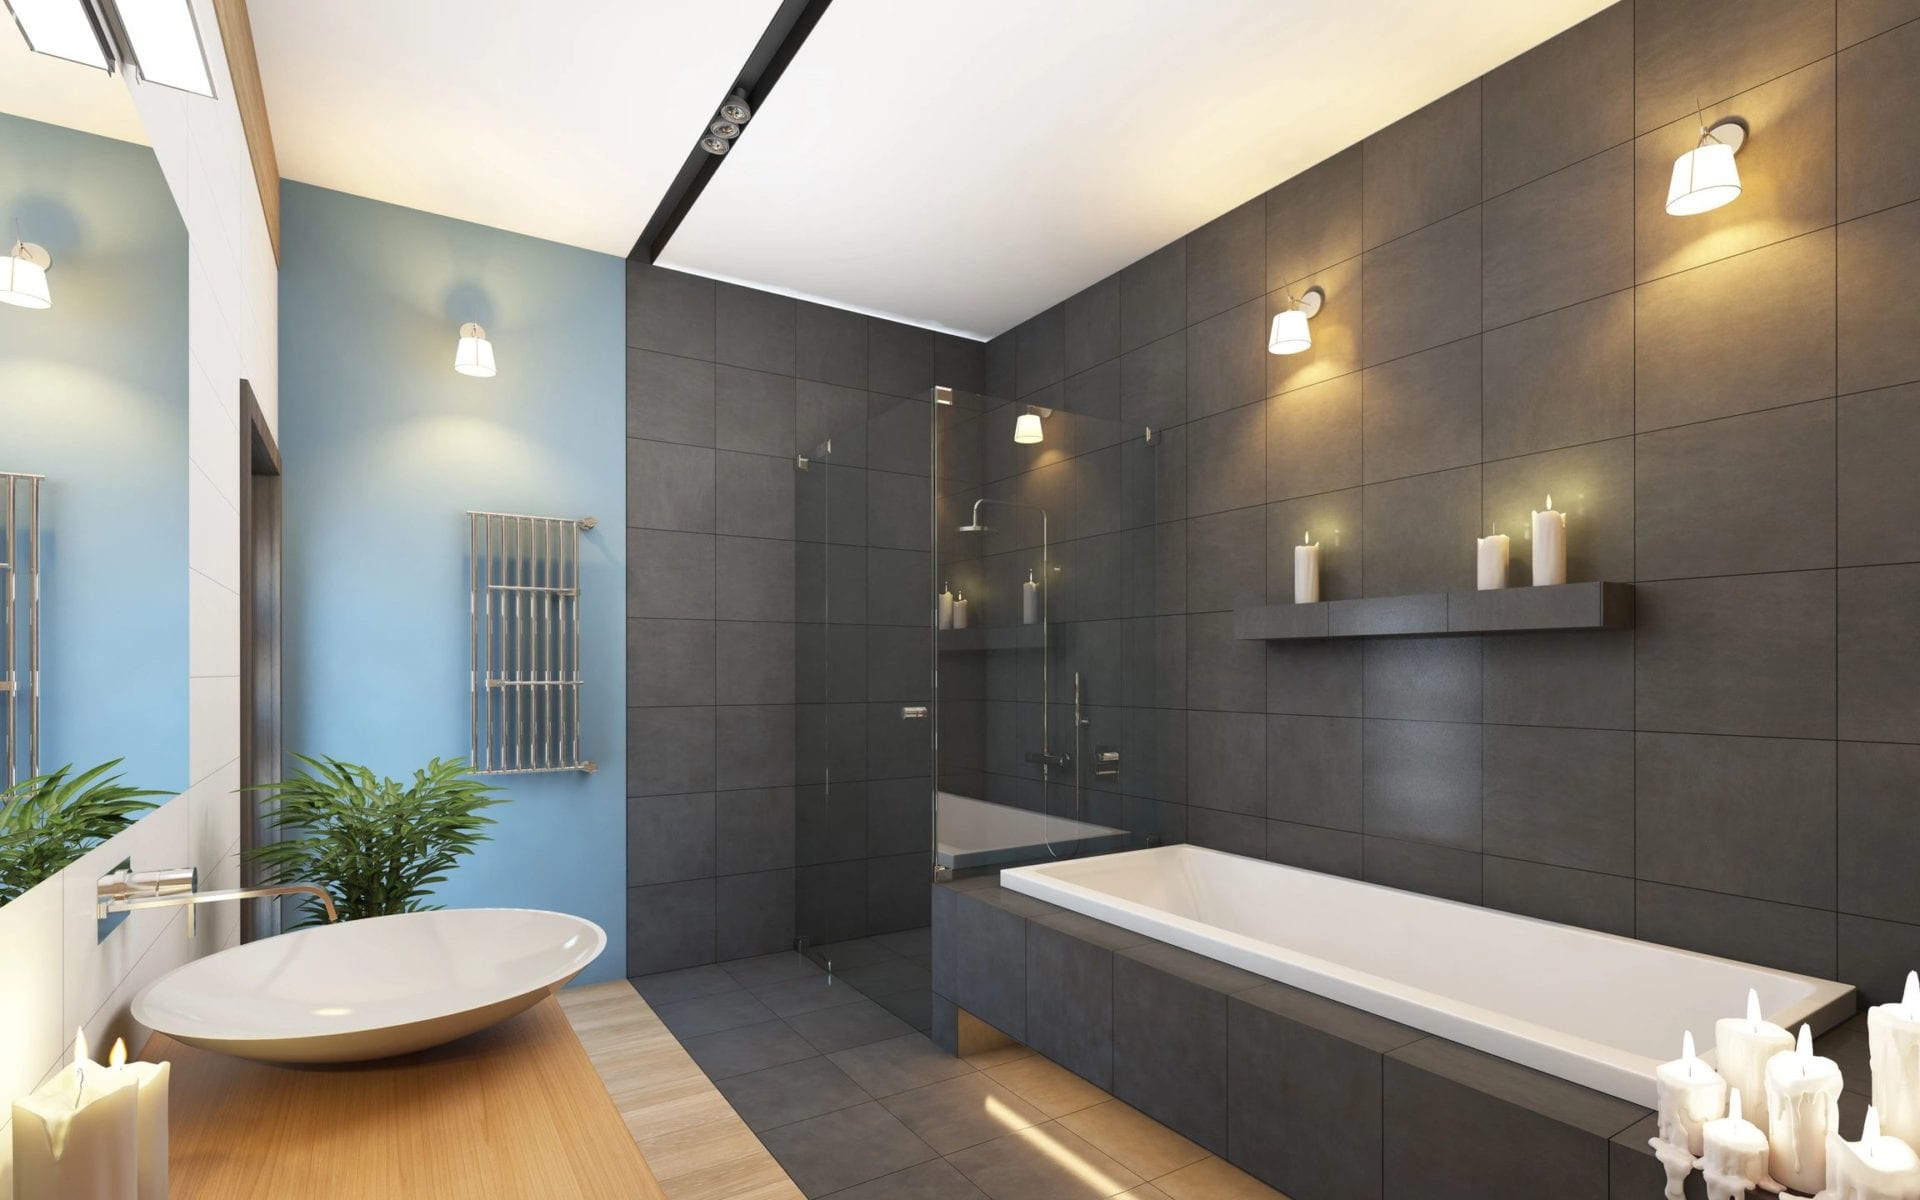 Modern bathroom space with elegant lighting and well-planned electrical systems